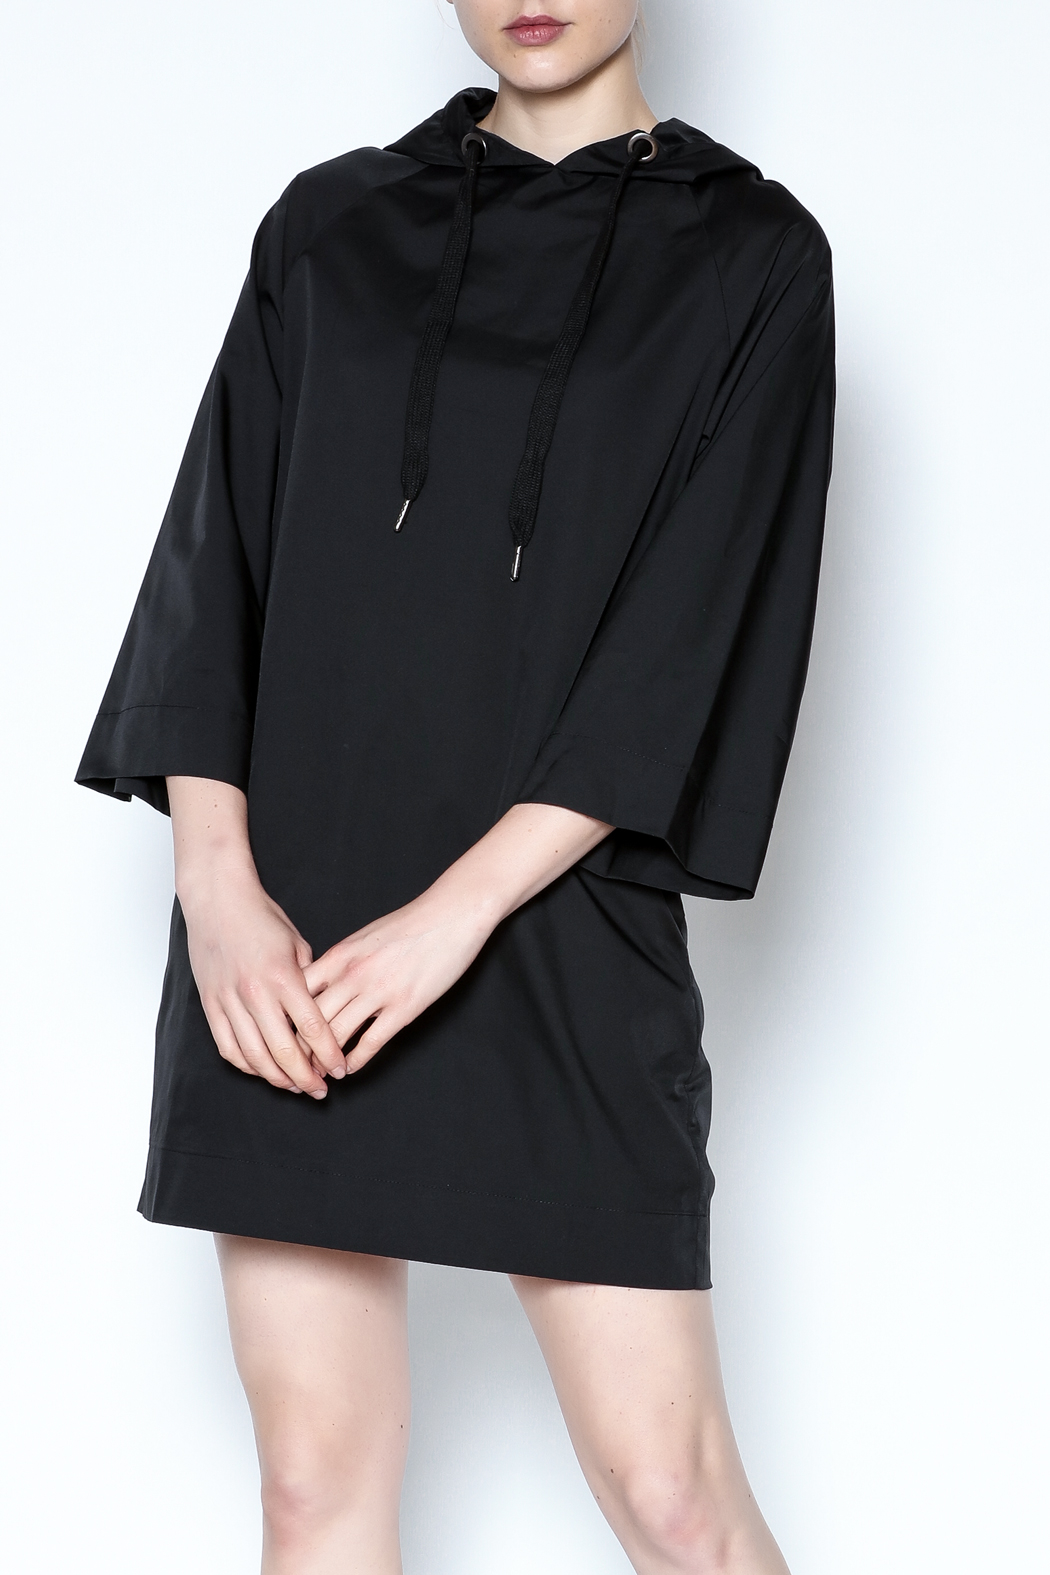 AMT Sporty Black Dress - Main Image